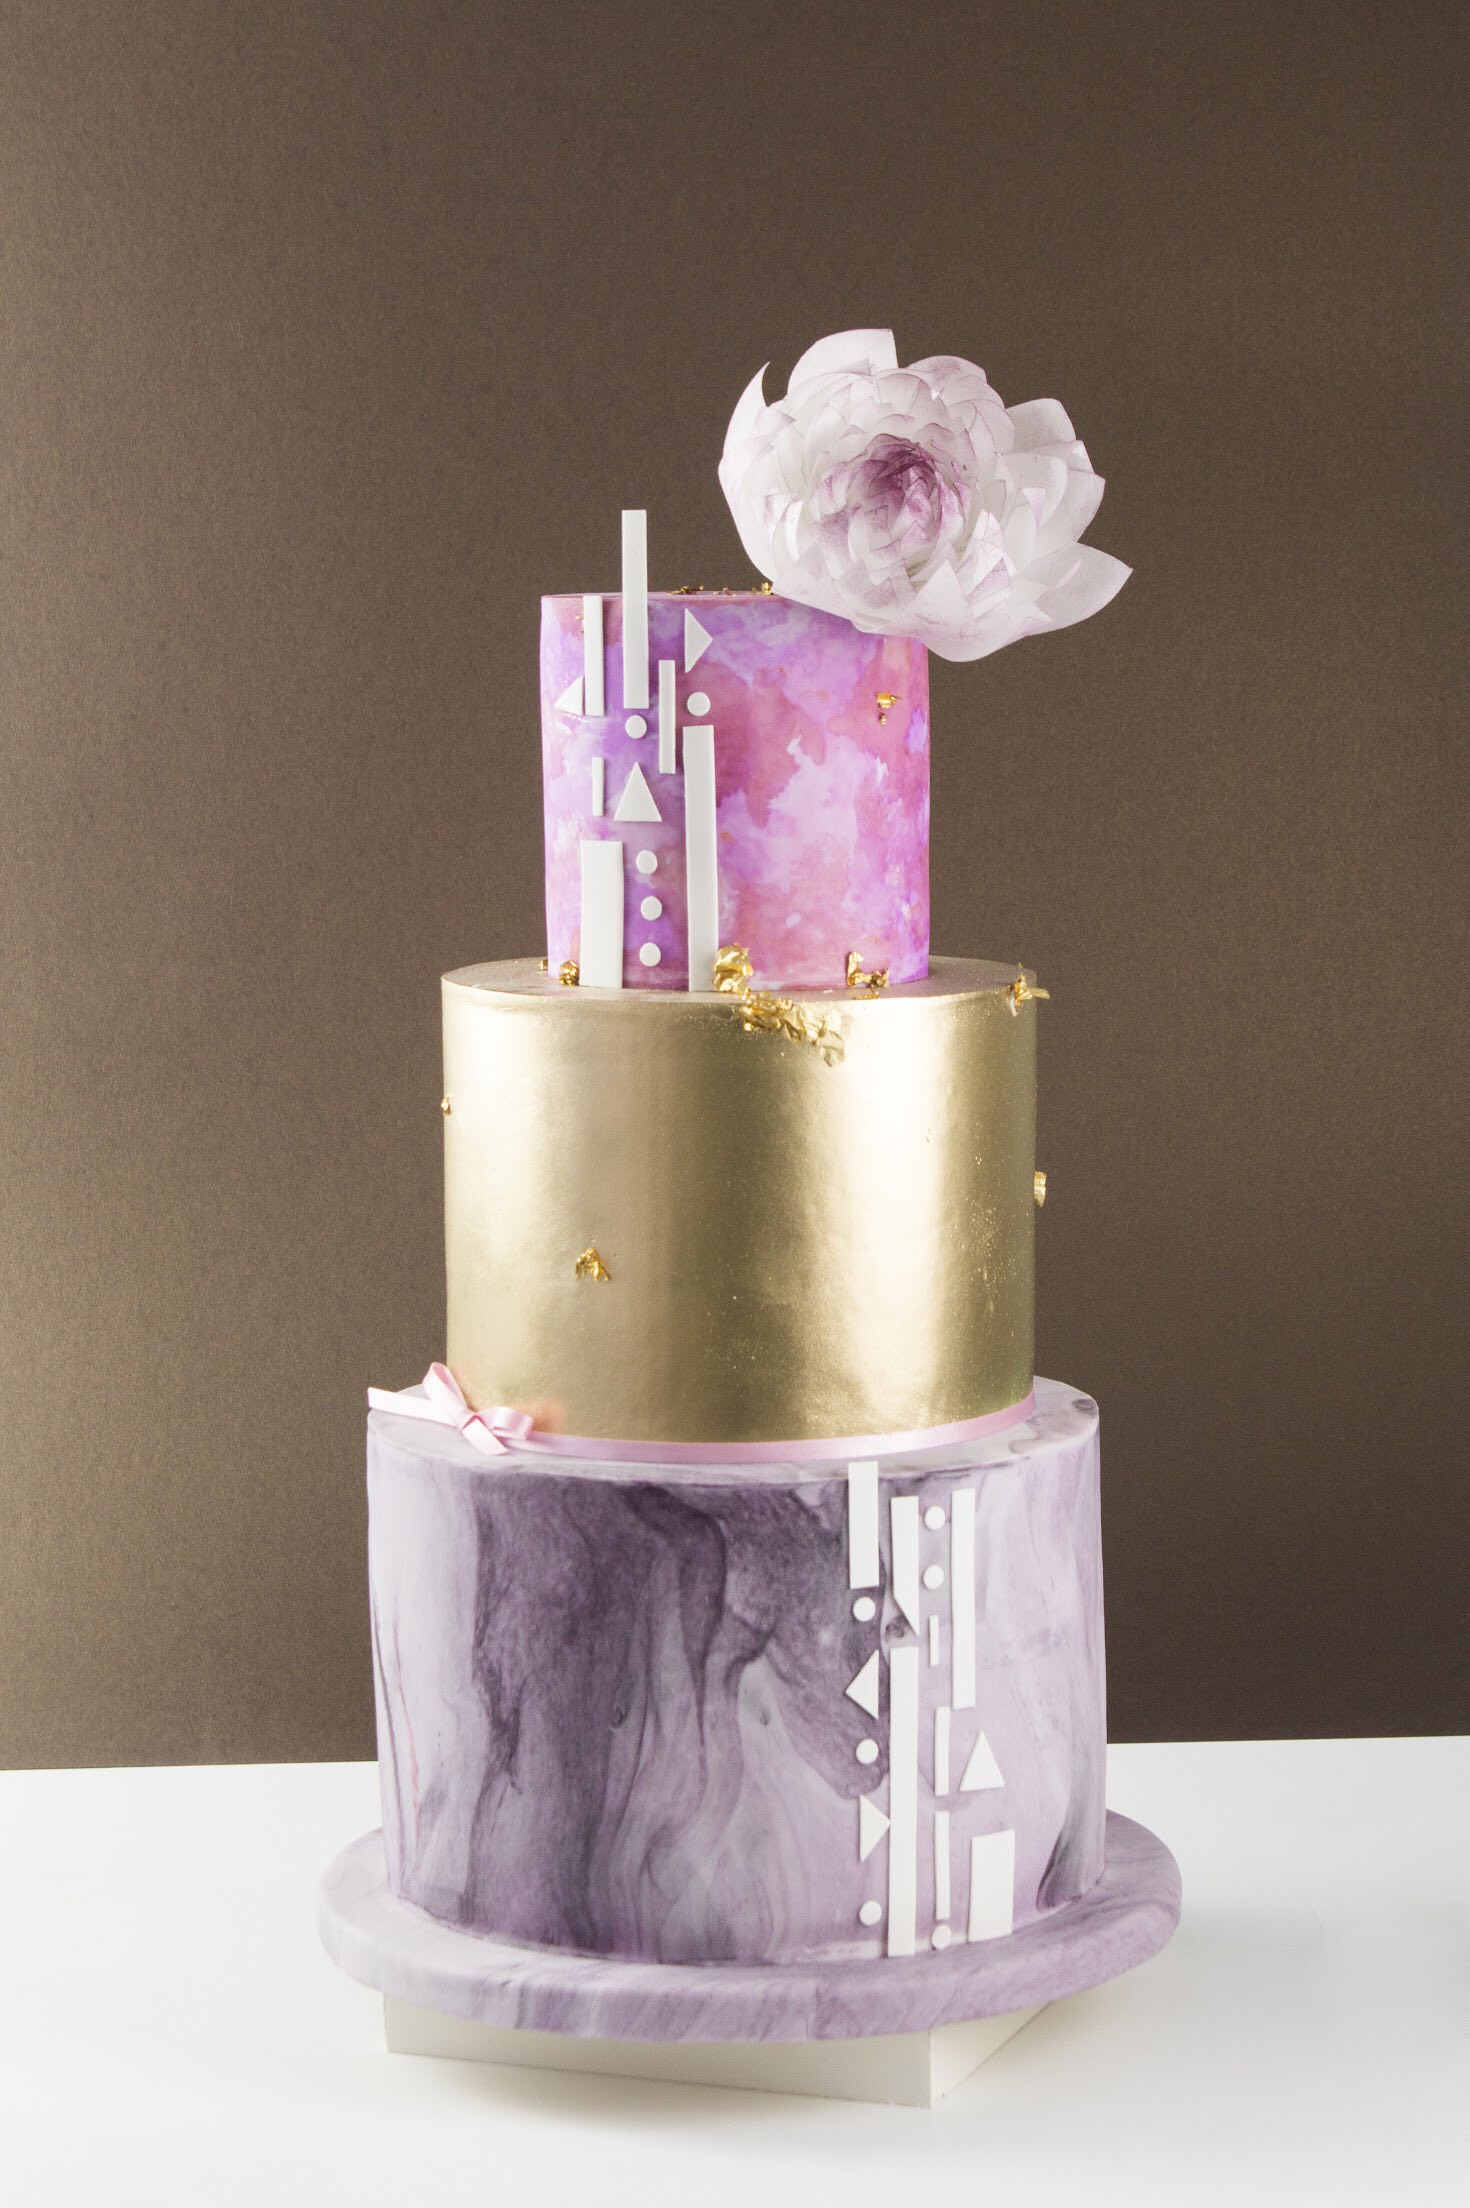 Purple and pink wedding cake with a gold tier